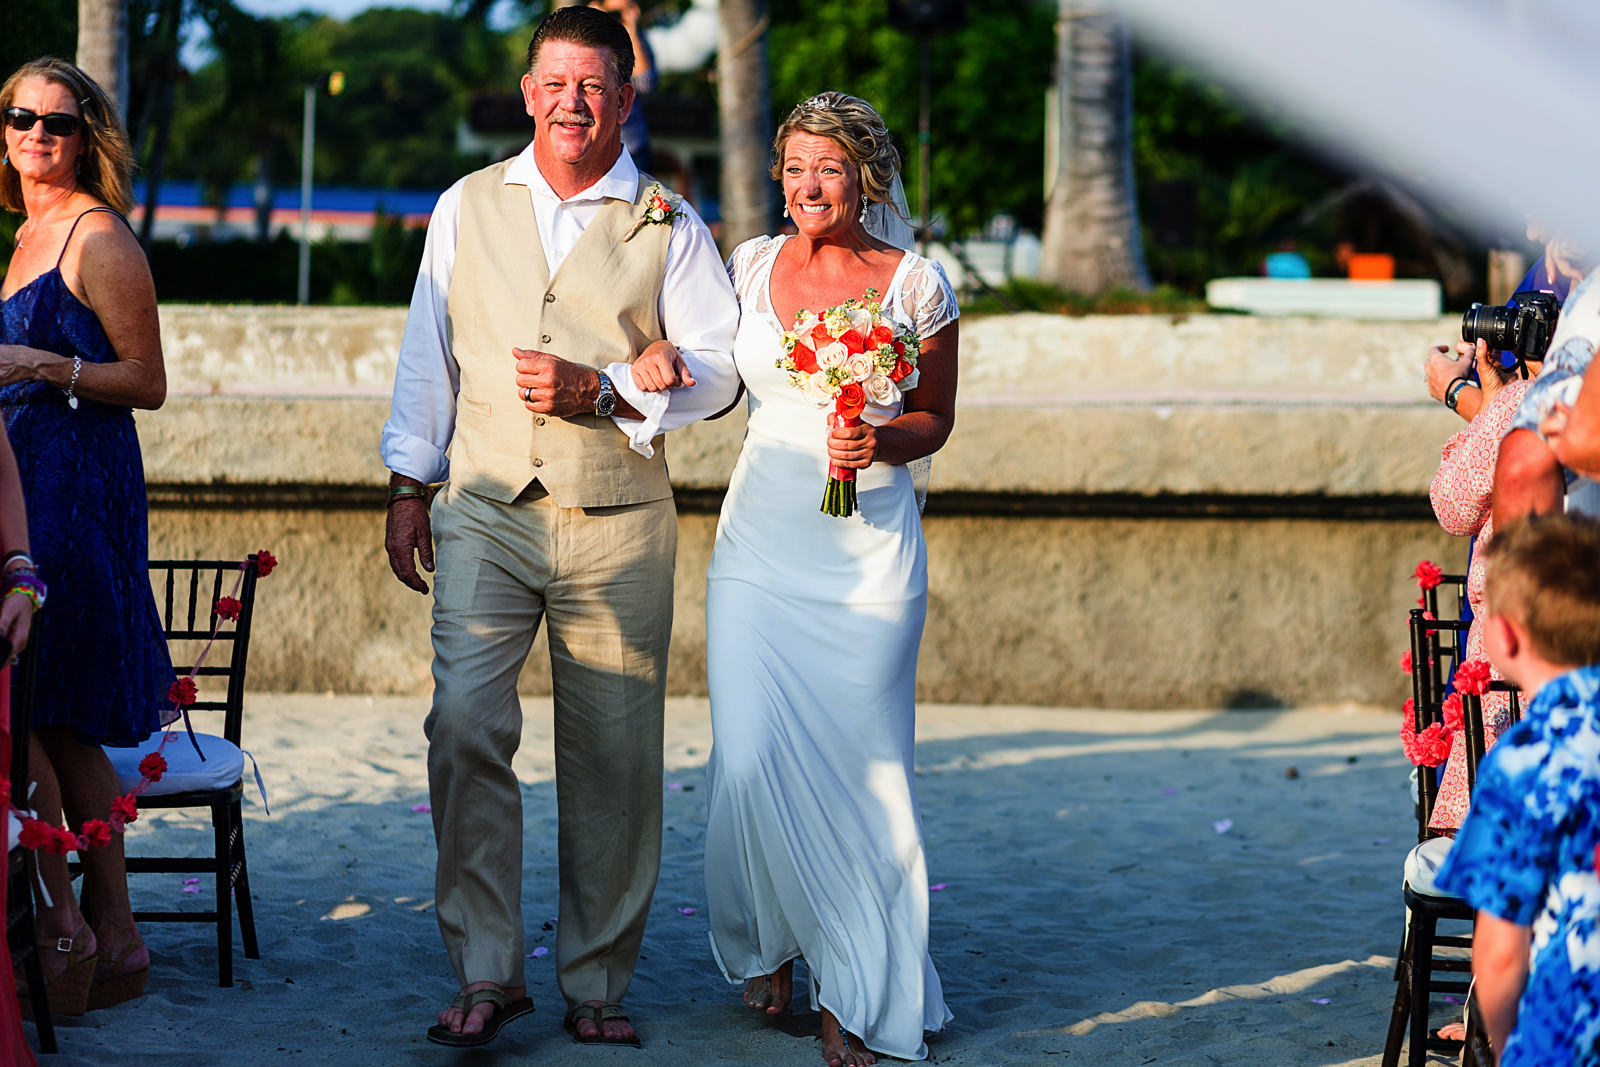 Dad and bride walking down the aisle, bride reacts with big smile to guests